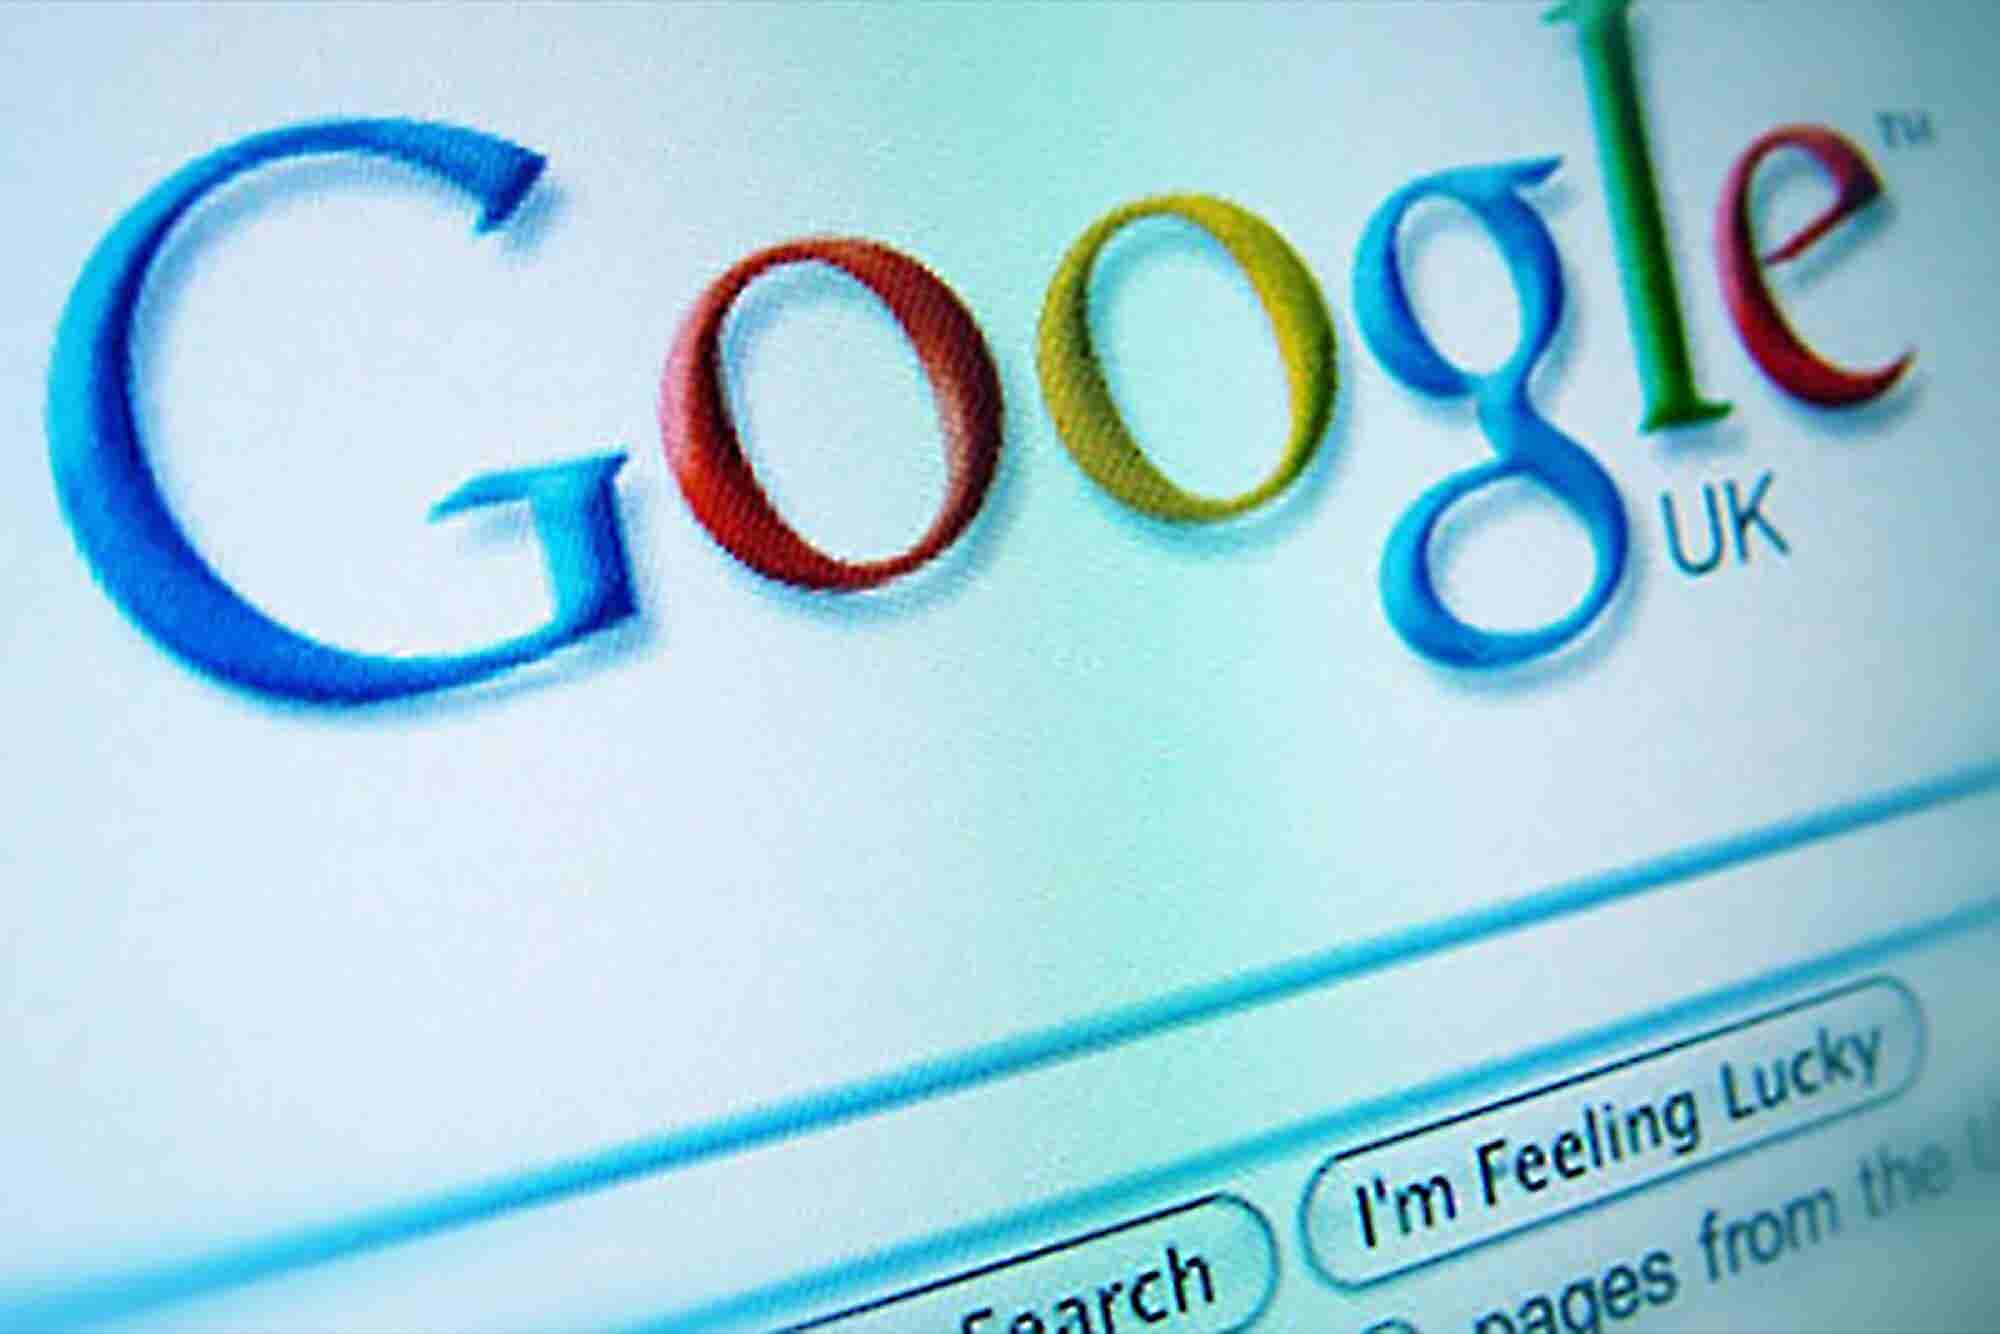 Google, Microsoft Take Steps to Block Searches for Child Porn